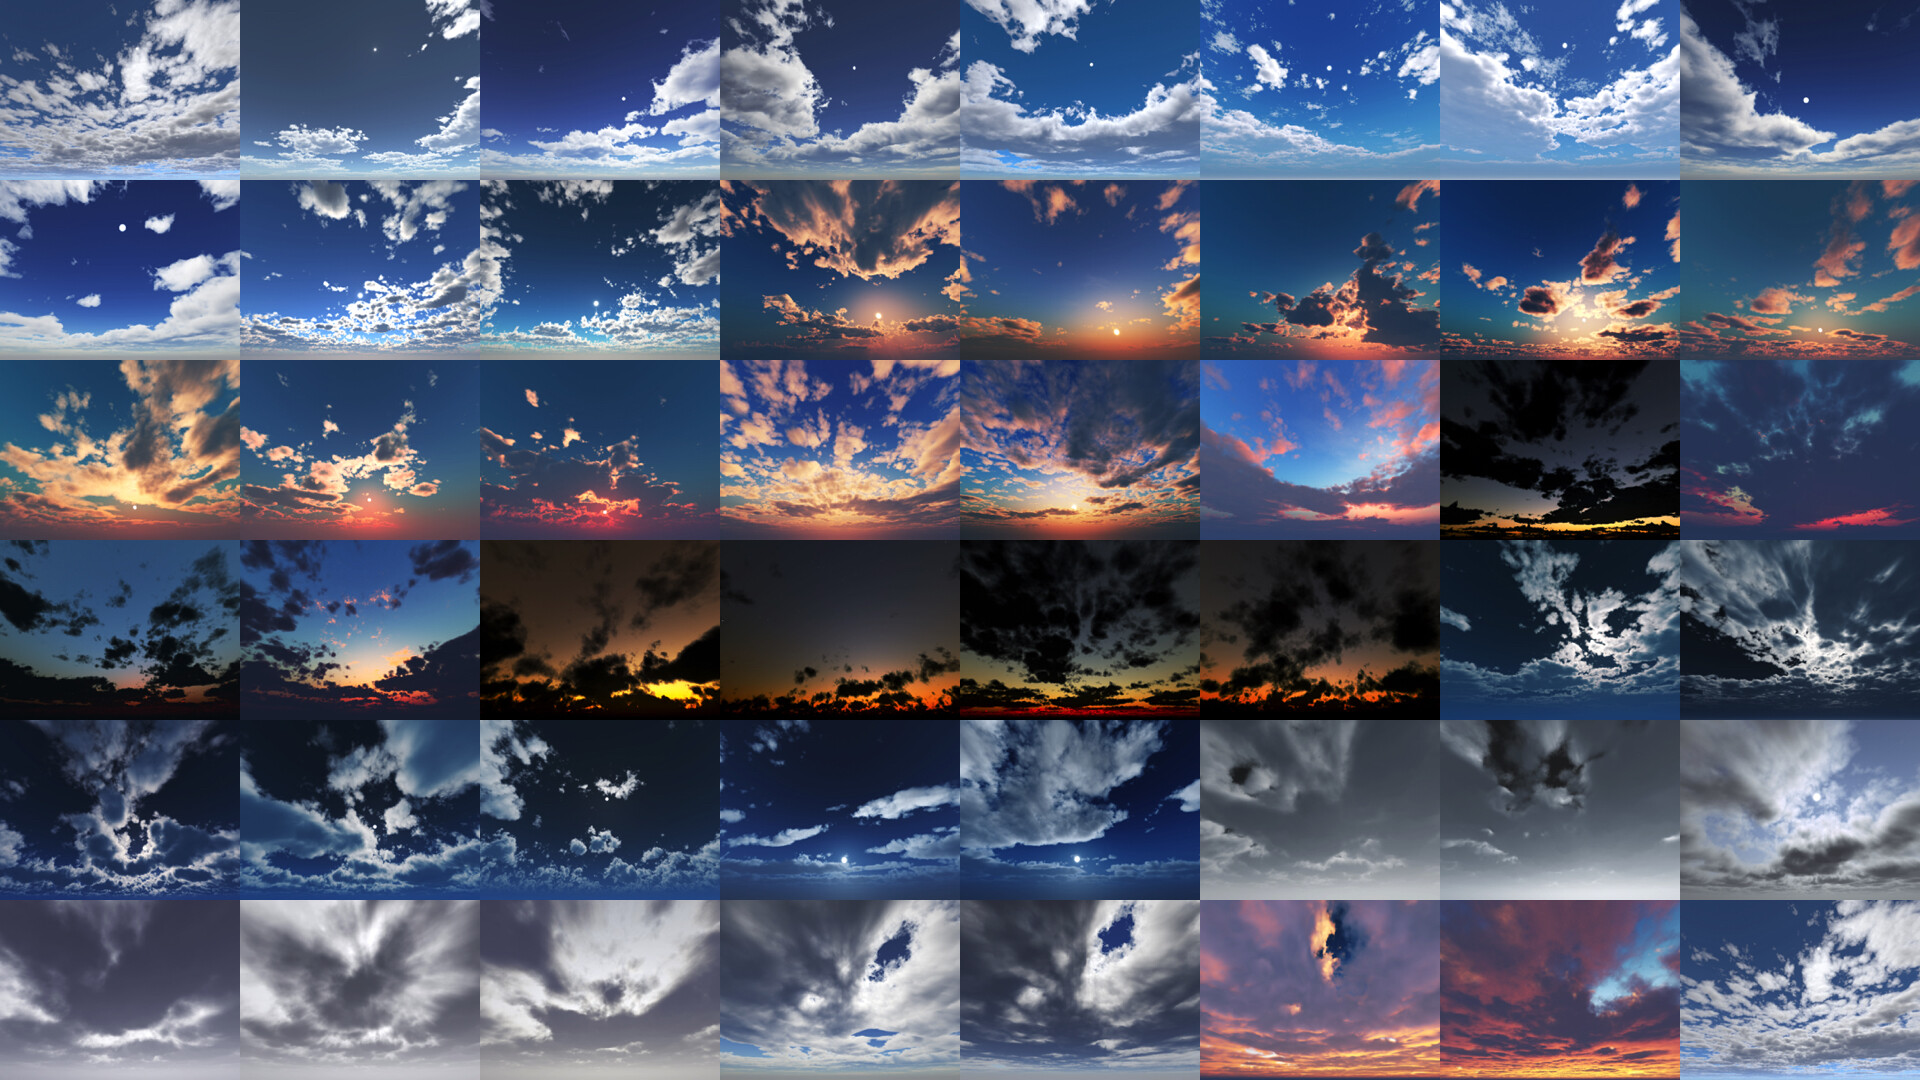 Projected previews of all HDRIs within the pack.